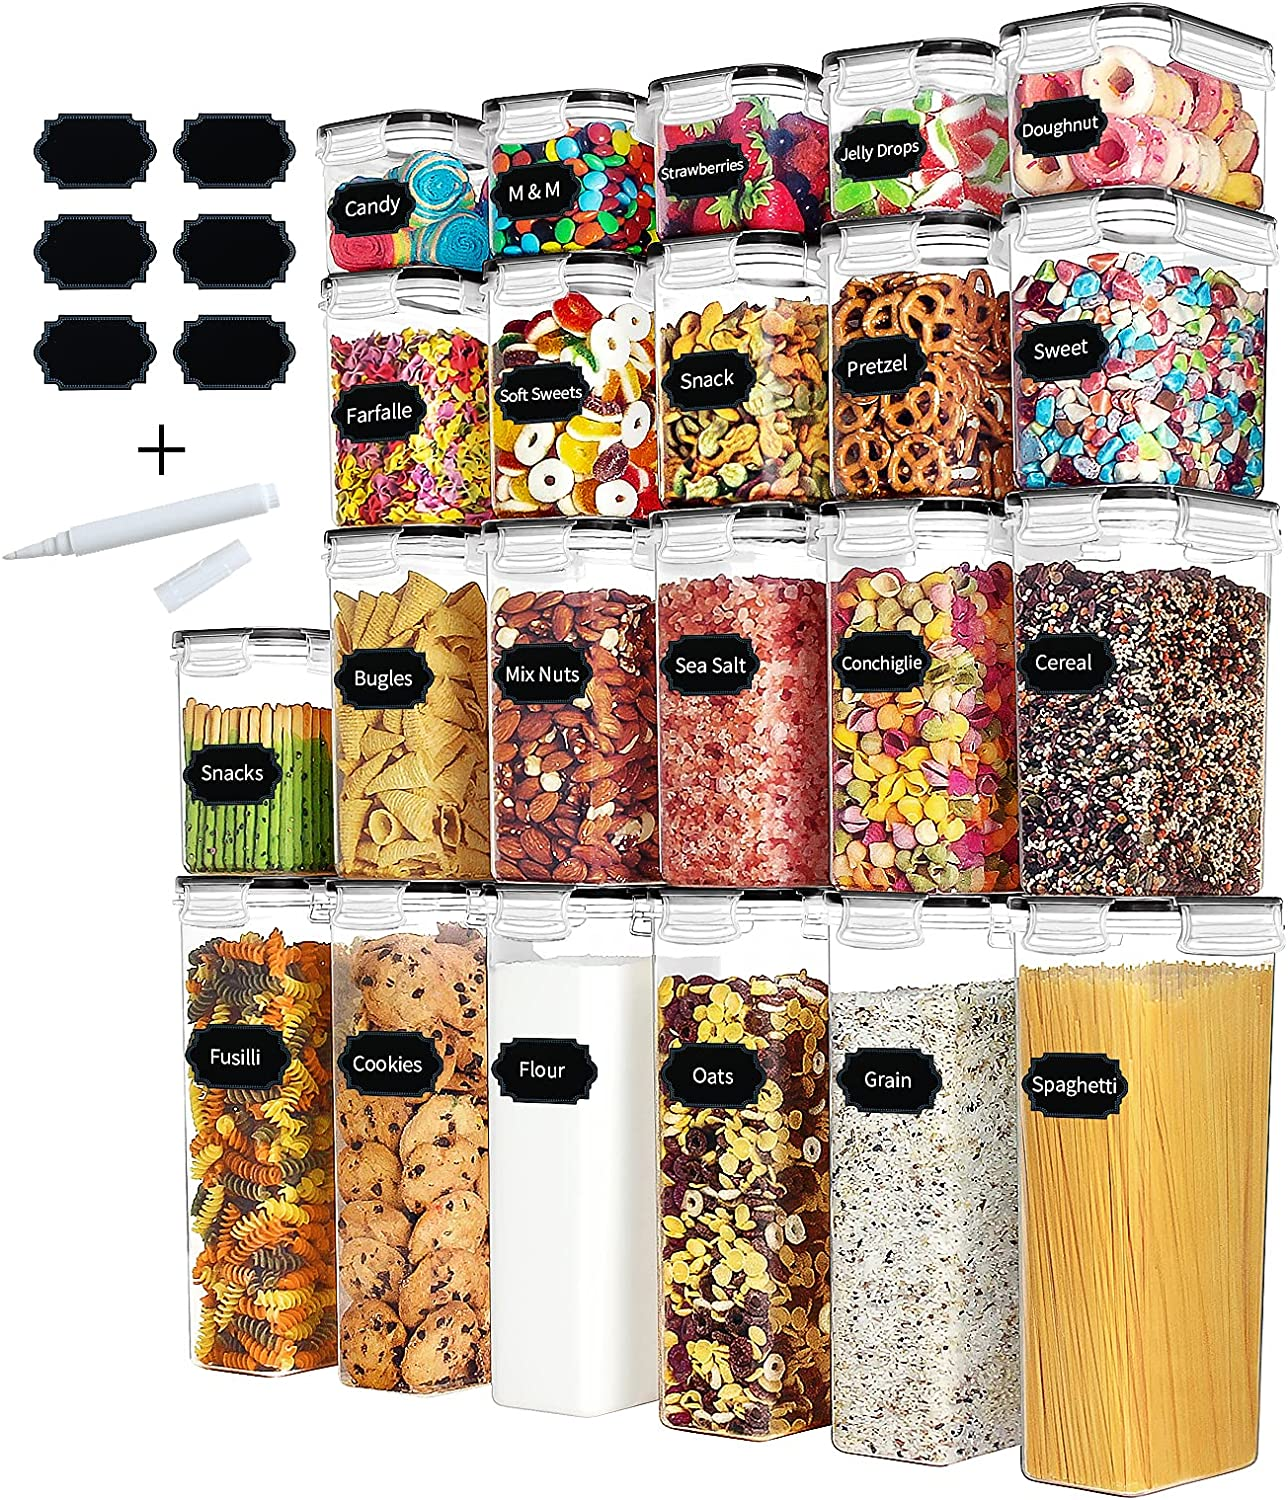 Airtight Food Storage Containers Set with Lids - Paincco 22pcs BPA Free Plastic Kitchen & Pantry Organization Canisters for Cereal, Flour & Baking Supplies, Include 40 Labels & 1 Marker, Black